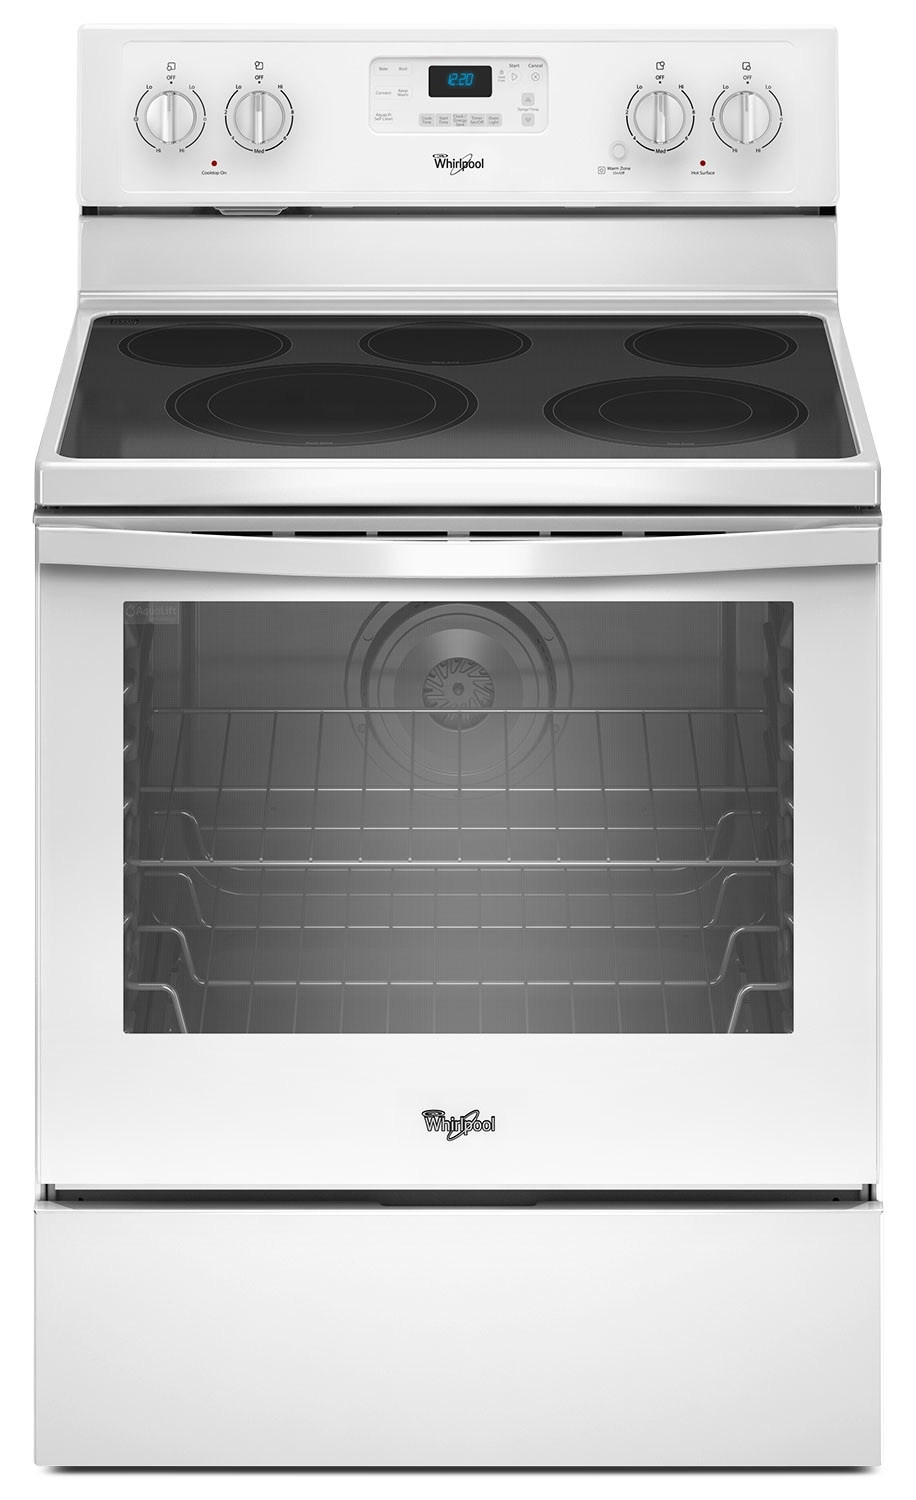 Cooking Products - Whirlpool 6.4 Cu. Ft. Electric Range with AquaLift® Technology - White